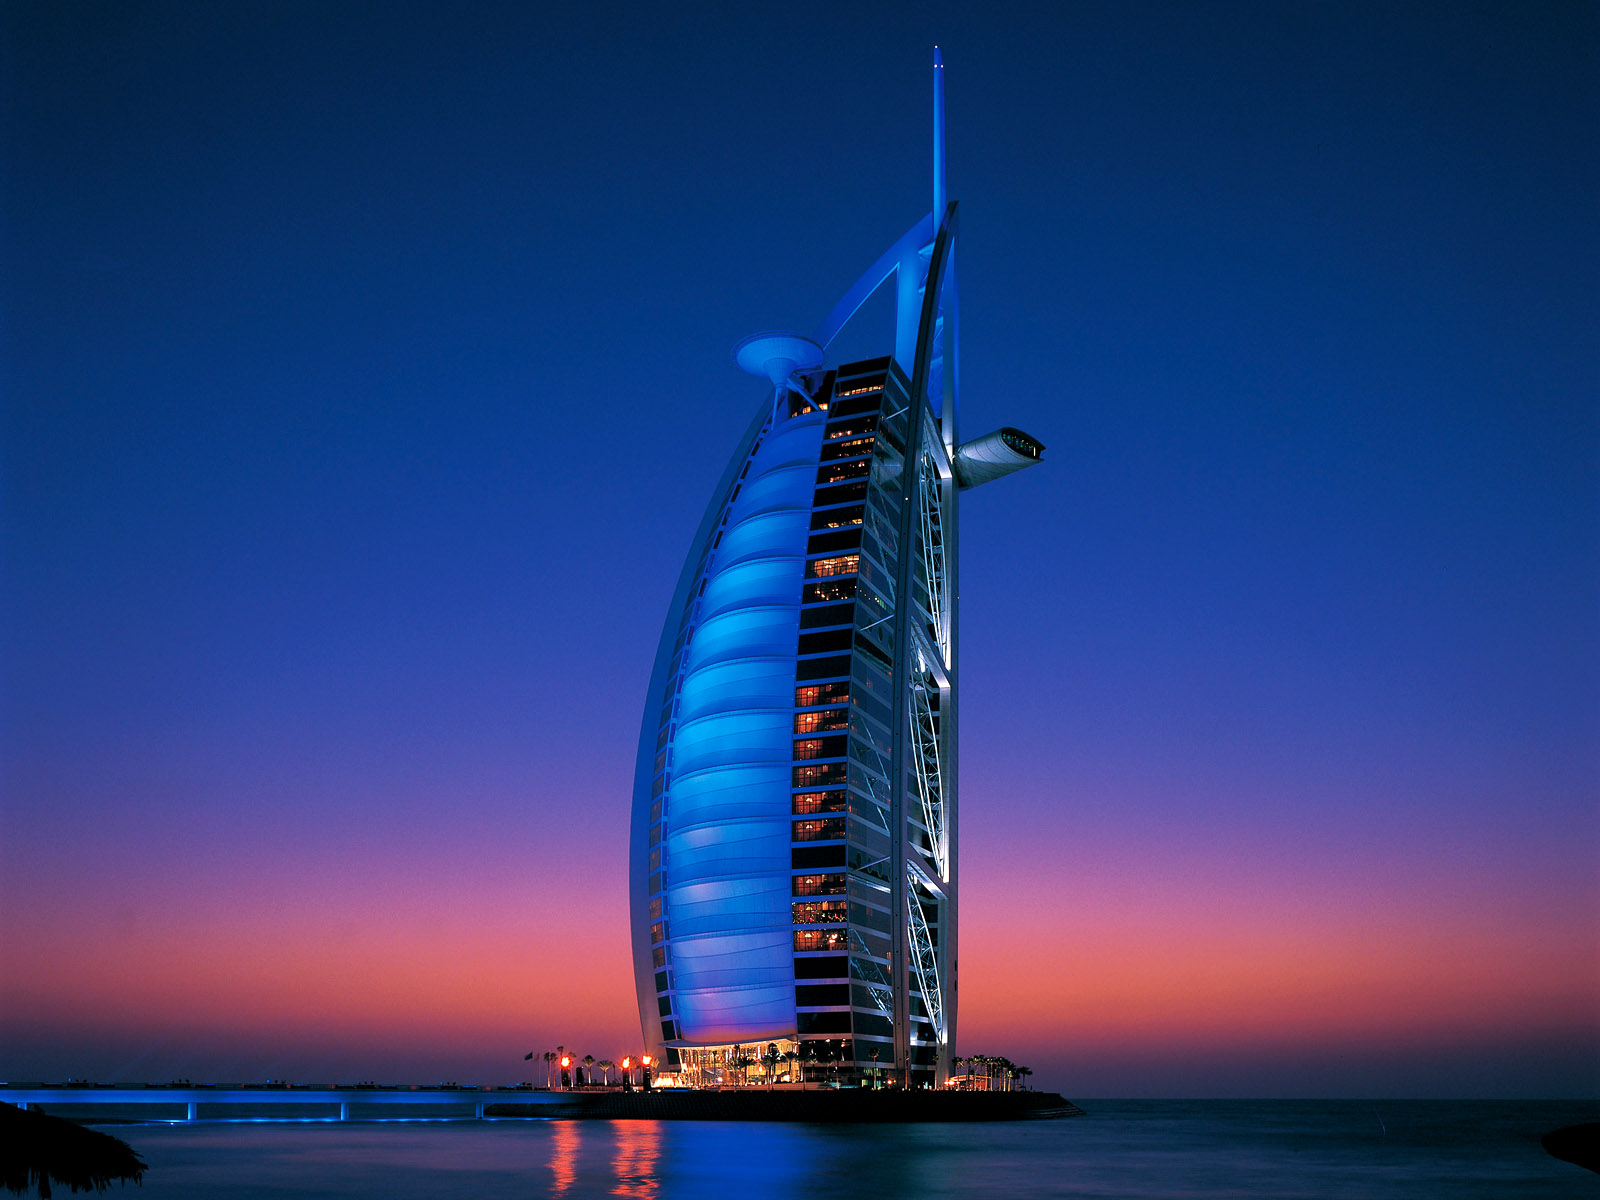 burj al arab hotel dubai world travel destinations